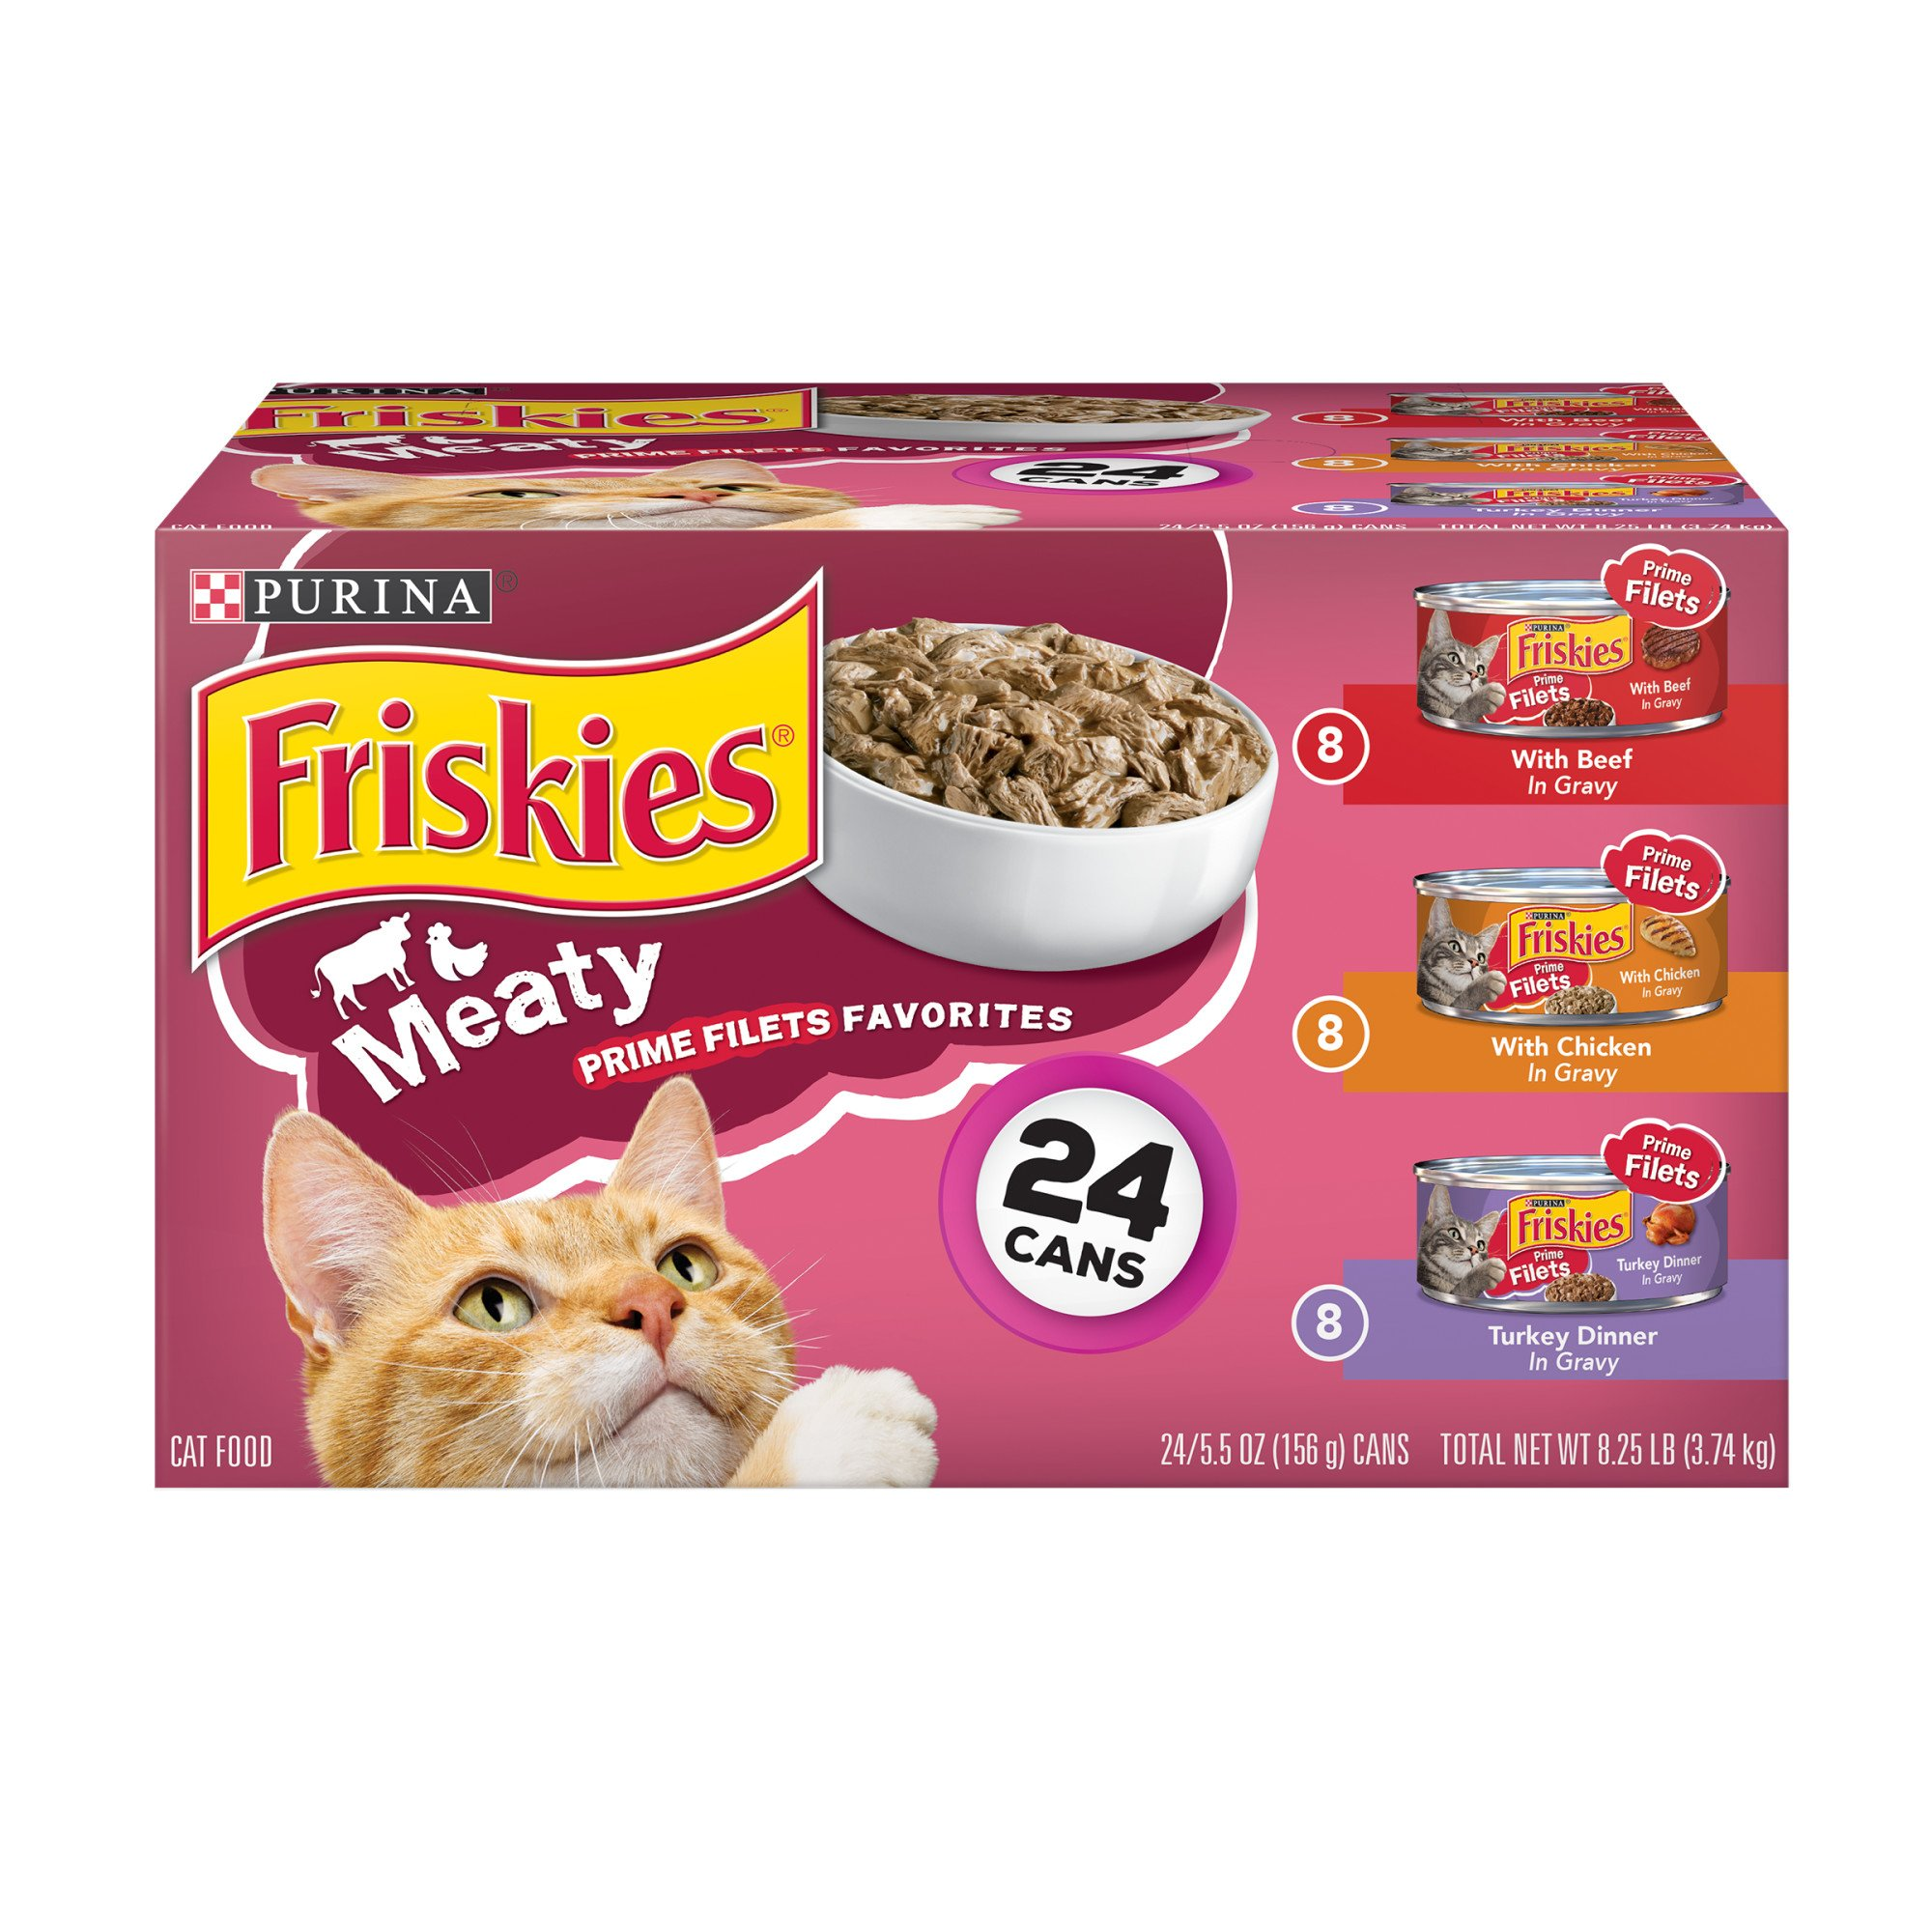 Friskies Prime Fillets Meaty Favorites Variety Pack Canned Cat Food